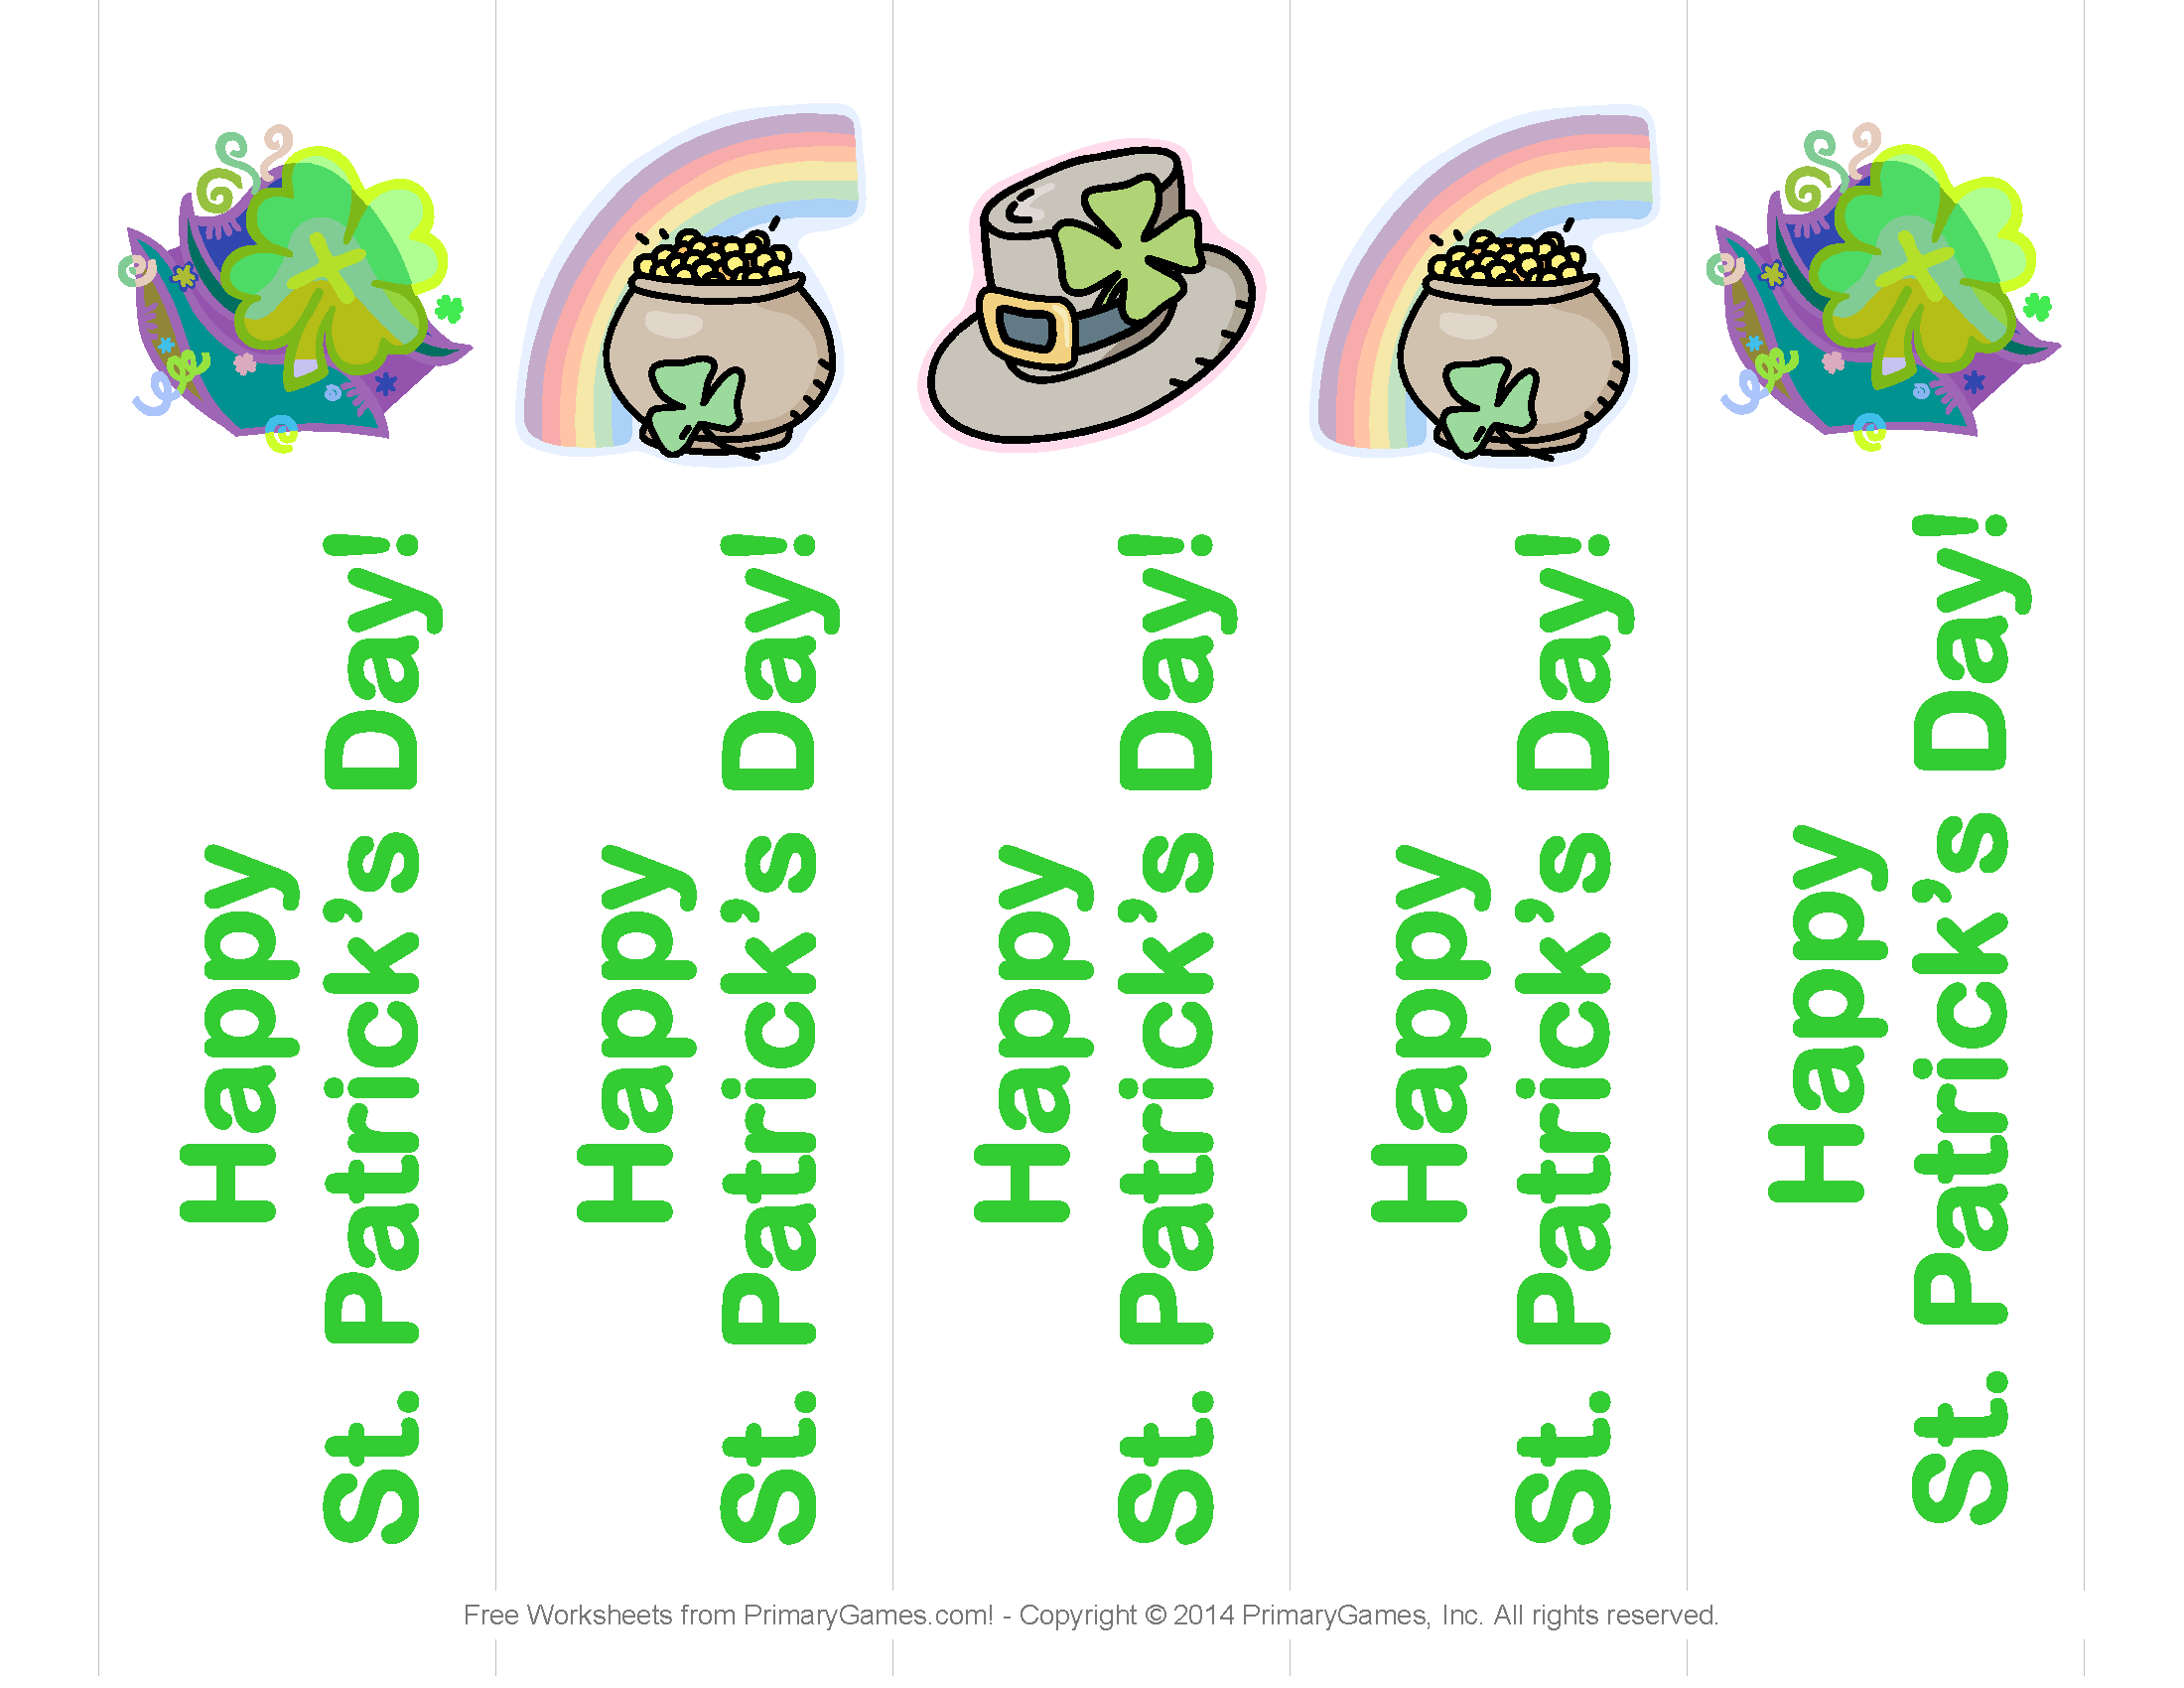 image relating to St Patrick's Day Worksheets Free Printable called St. Patricks Working day Worksheets: St. Patricks Working day Bookmarks